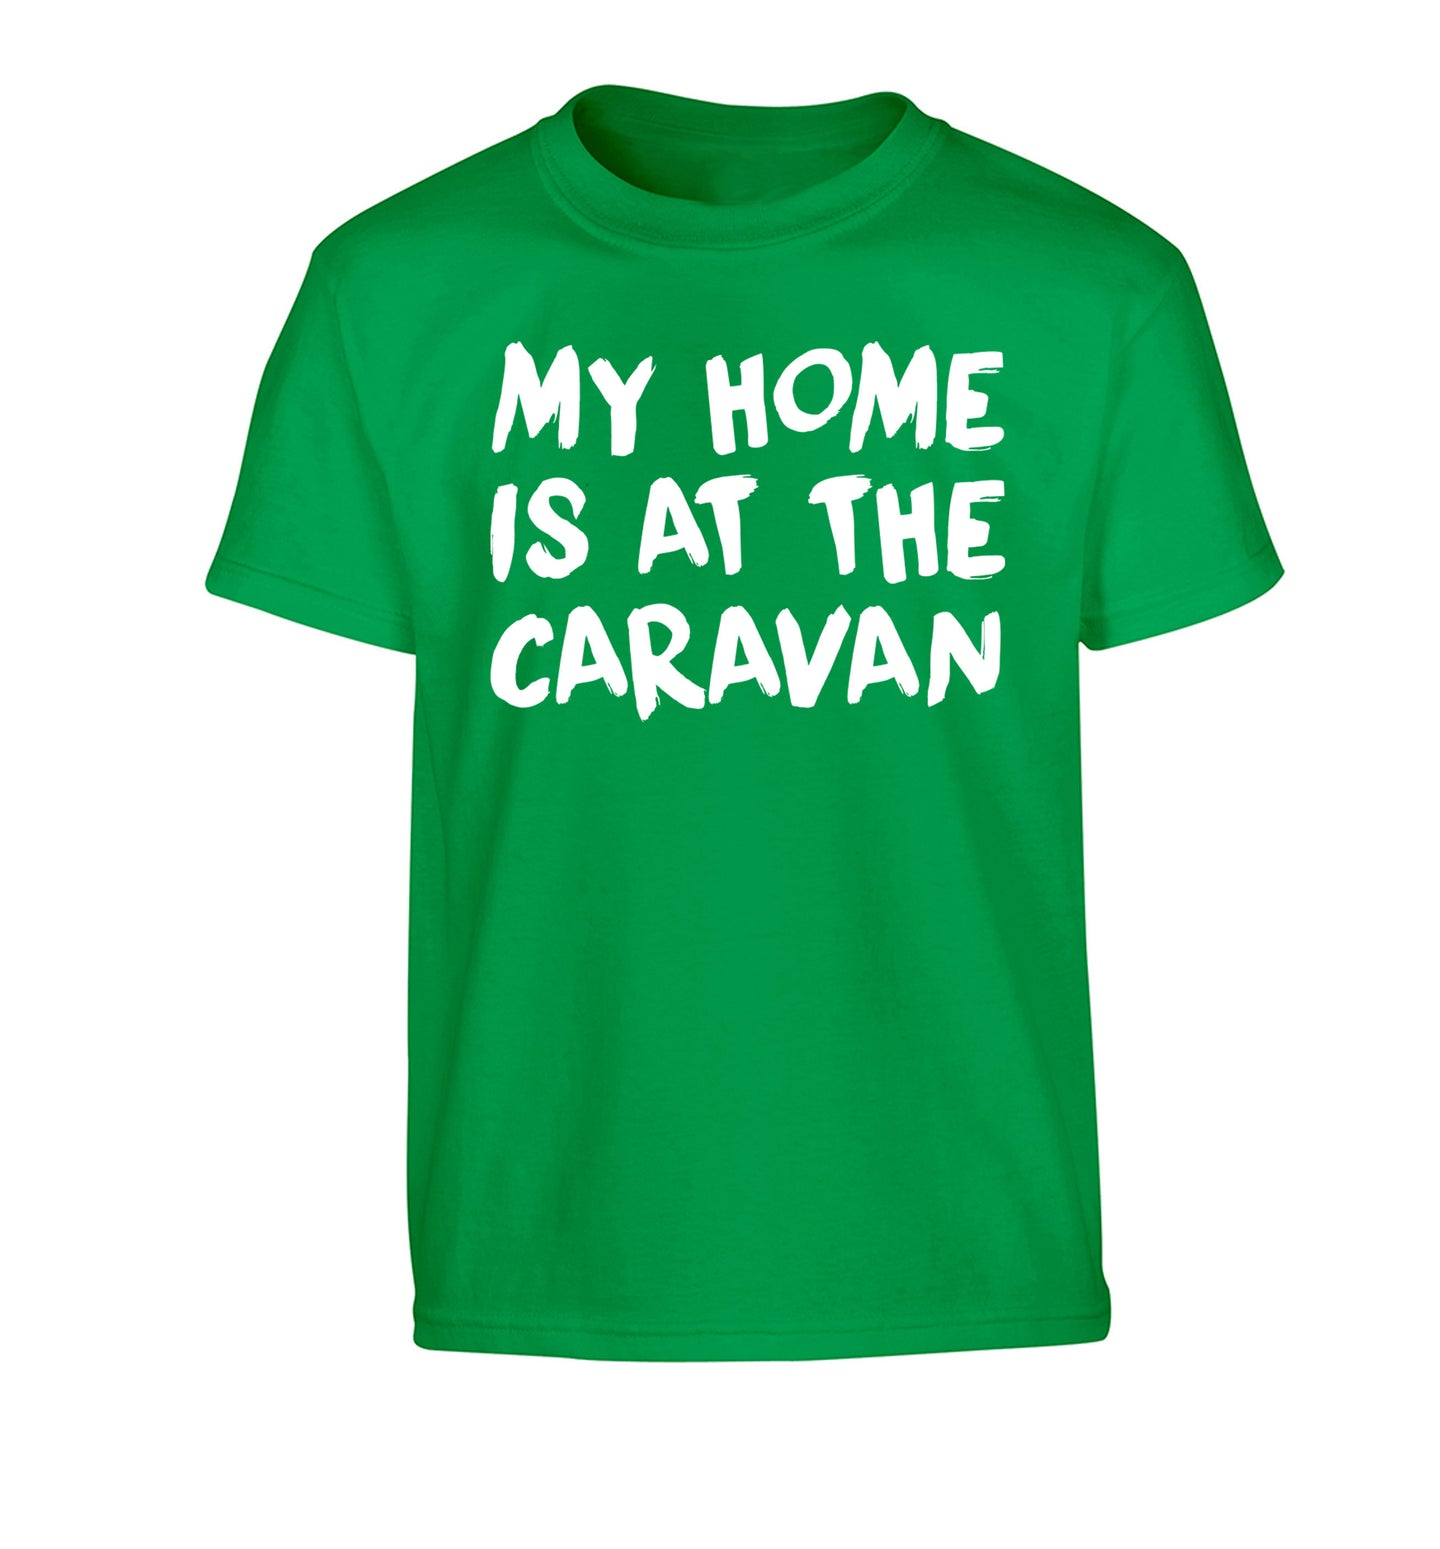 My home is at the caravan Children's green Tshirt 12-14 Years